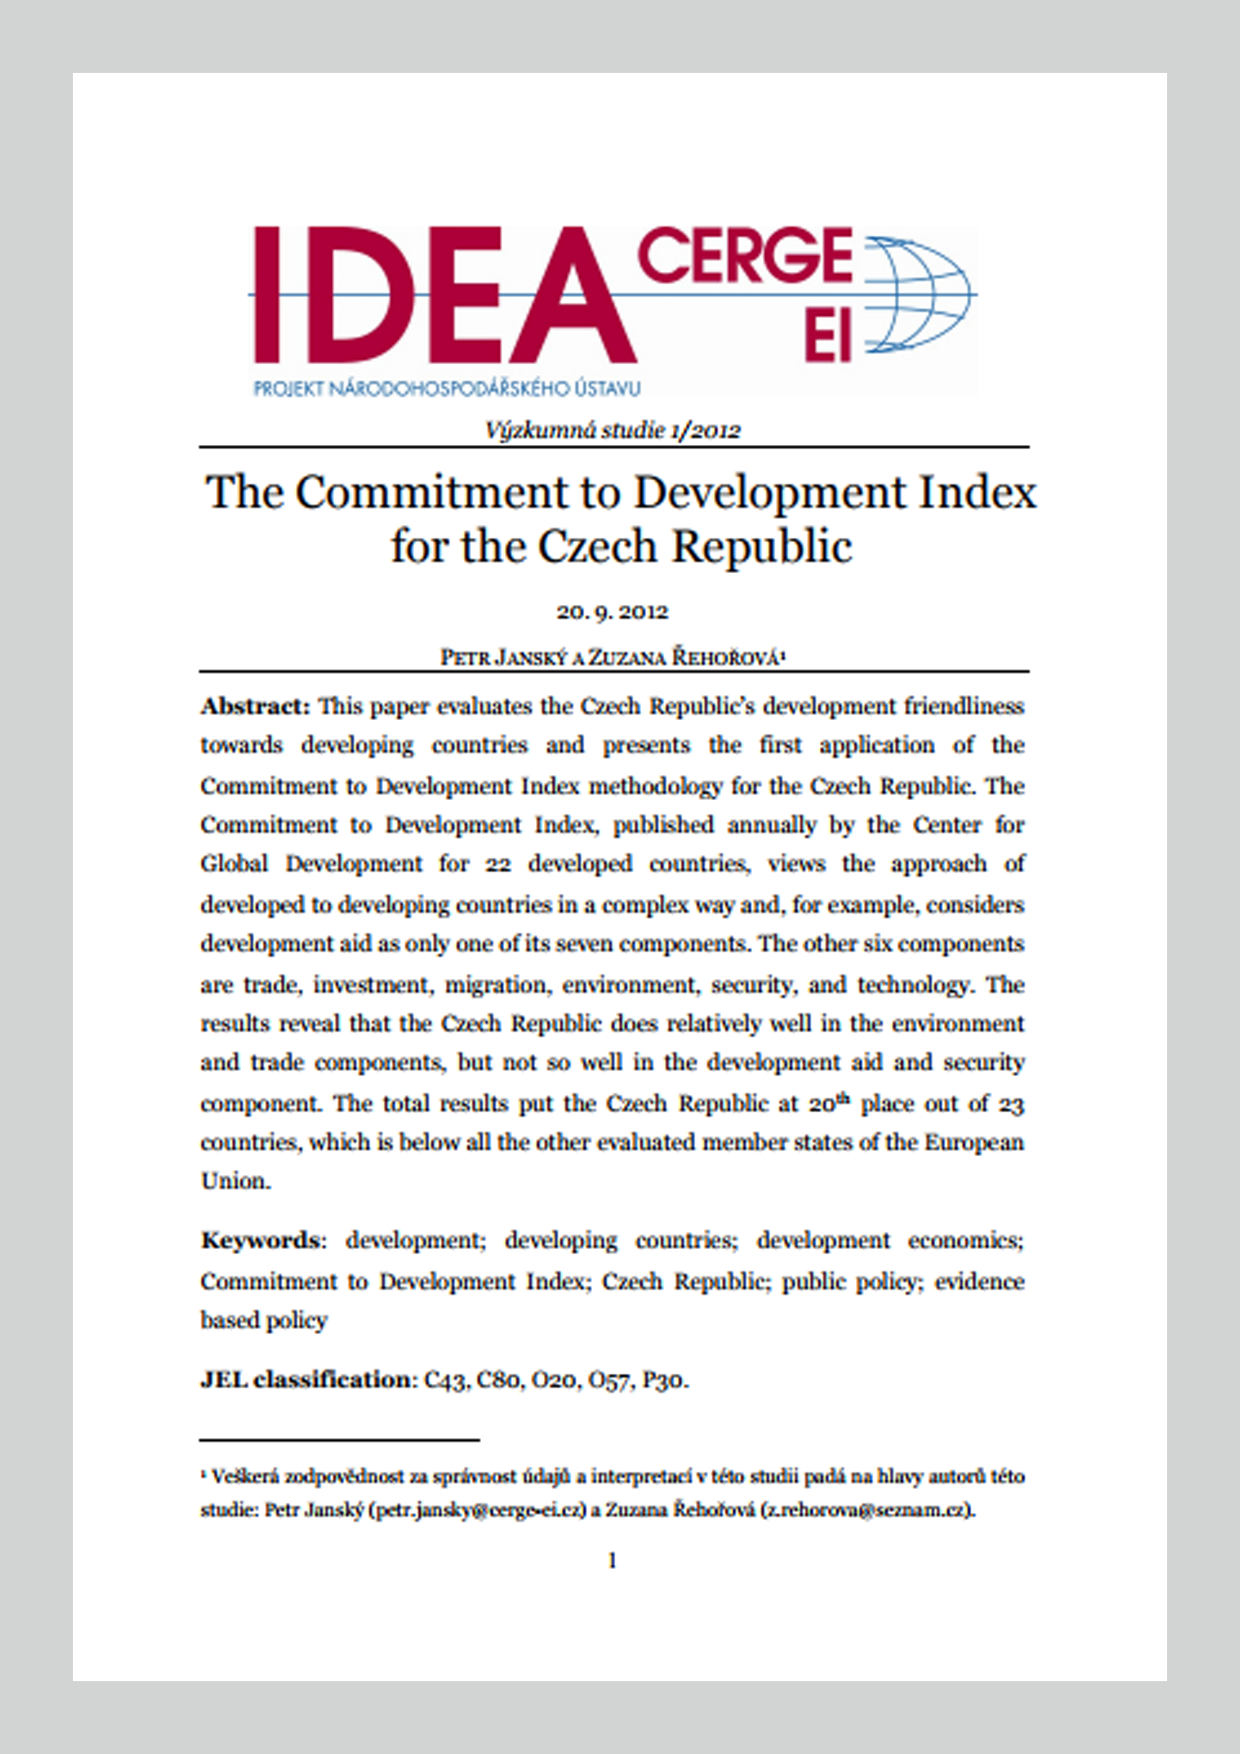 The Commitment to Development Index for the Czech Republic